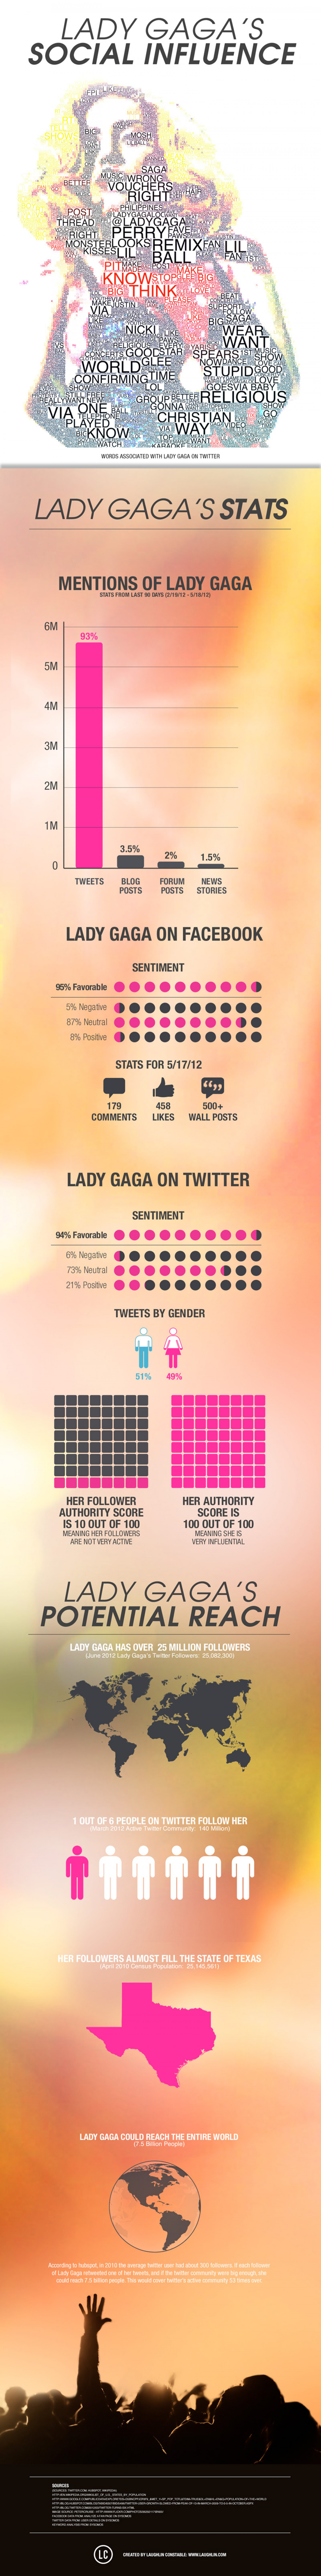 Lady Gaga's Social Influence Infographic